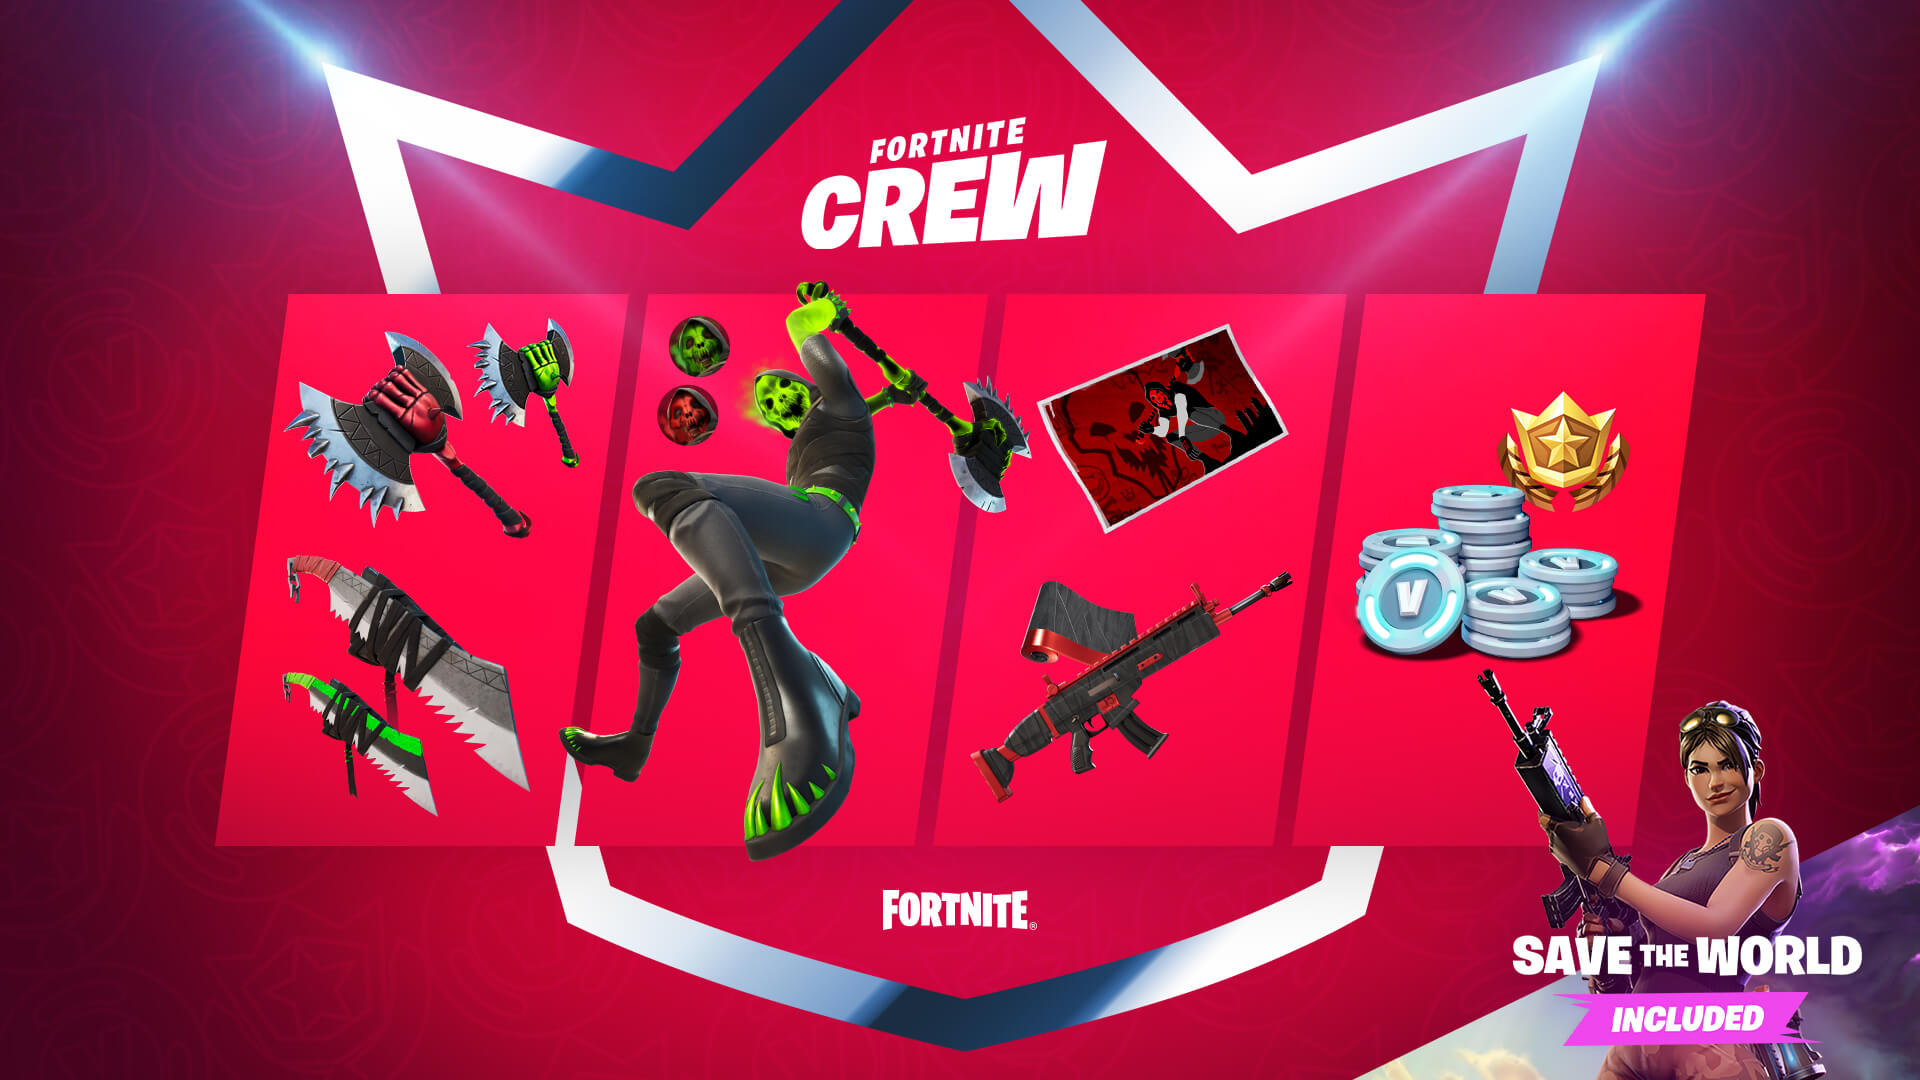 May 2021 Fortnite Crew Benefits